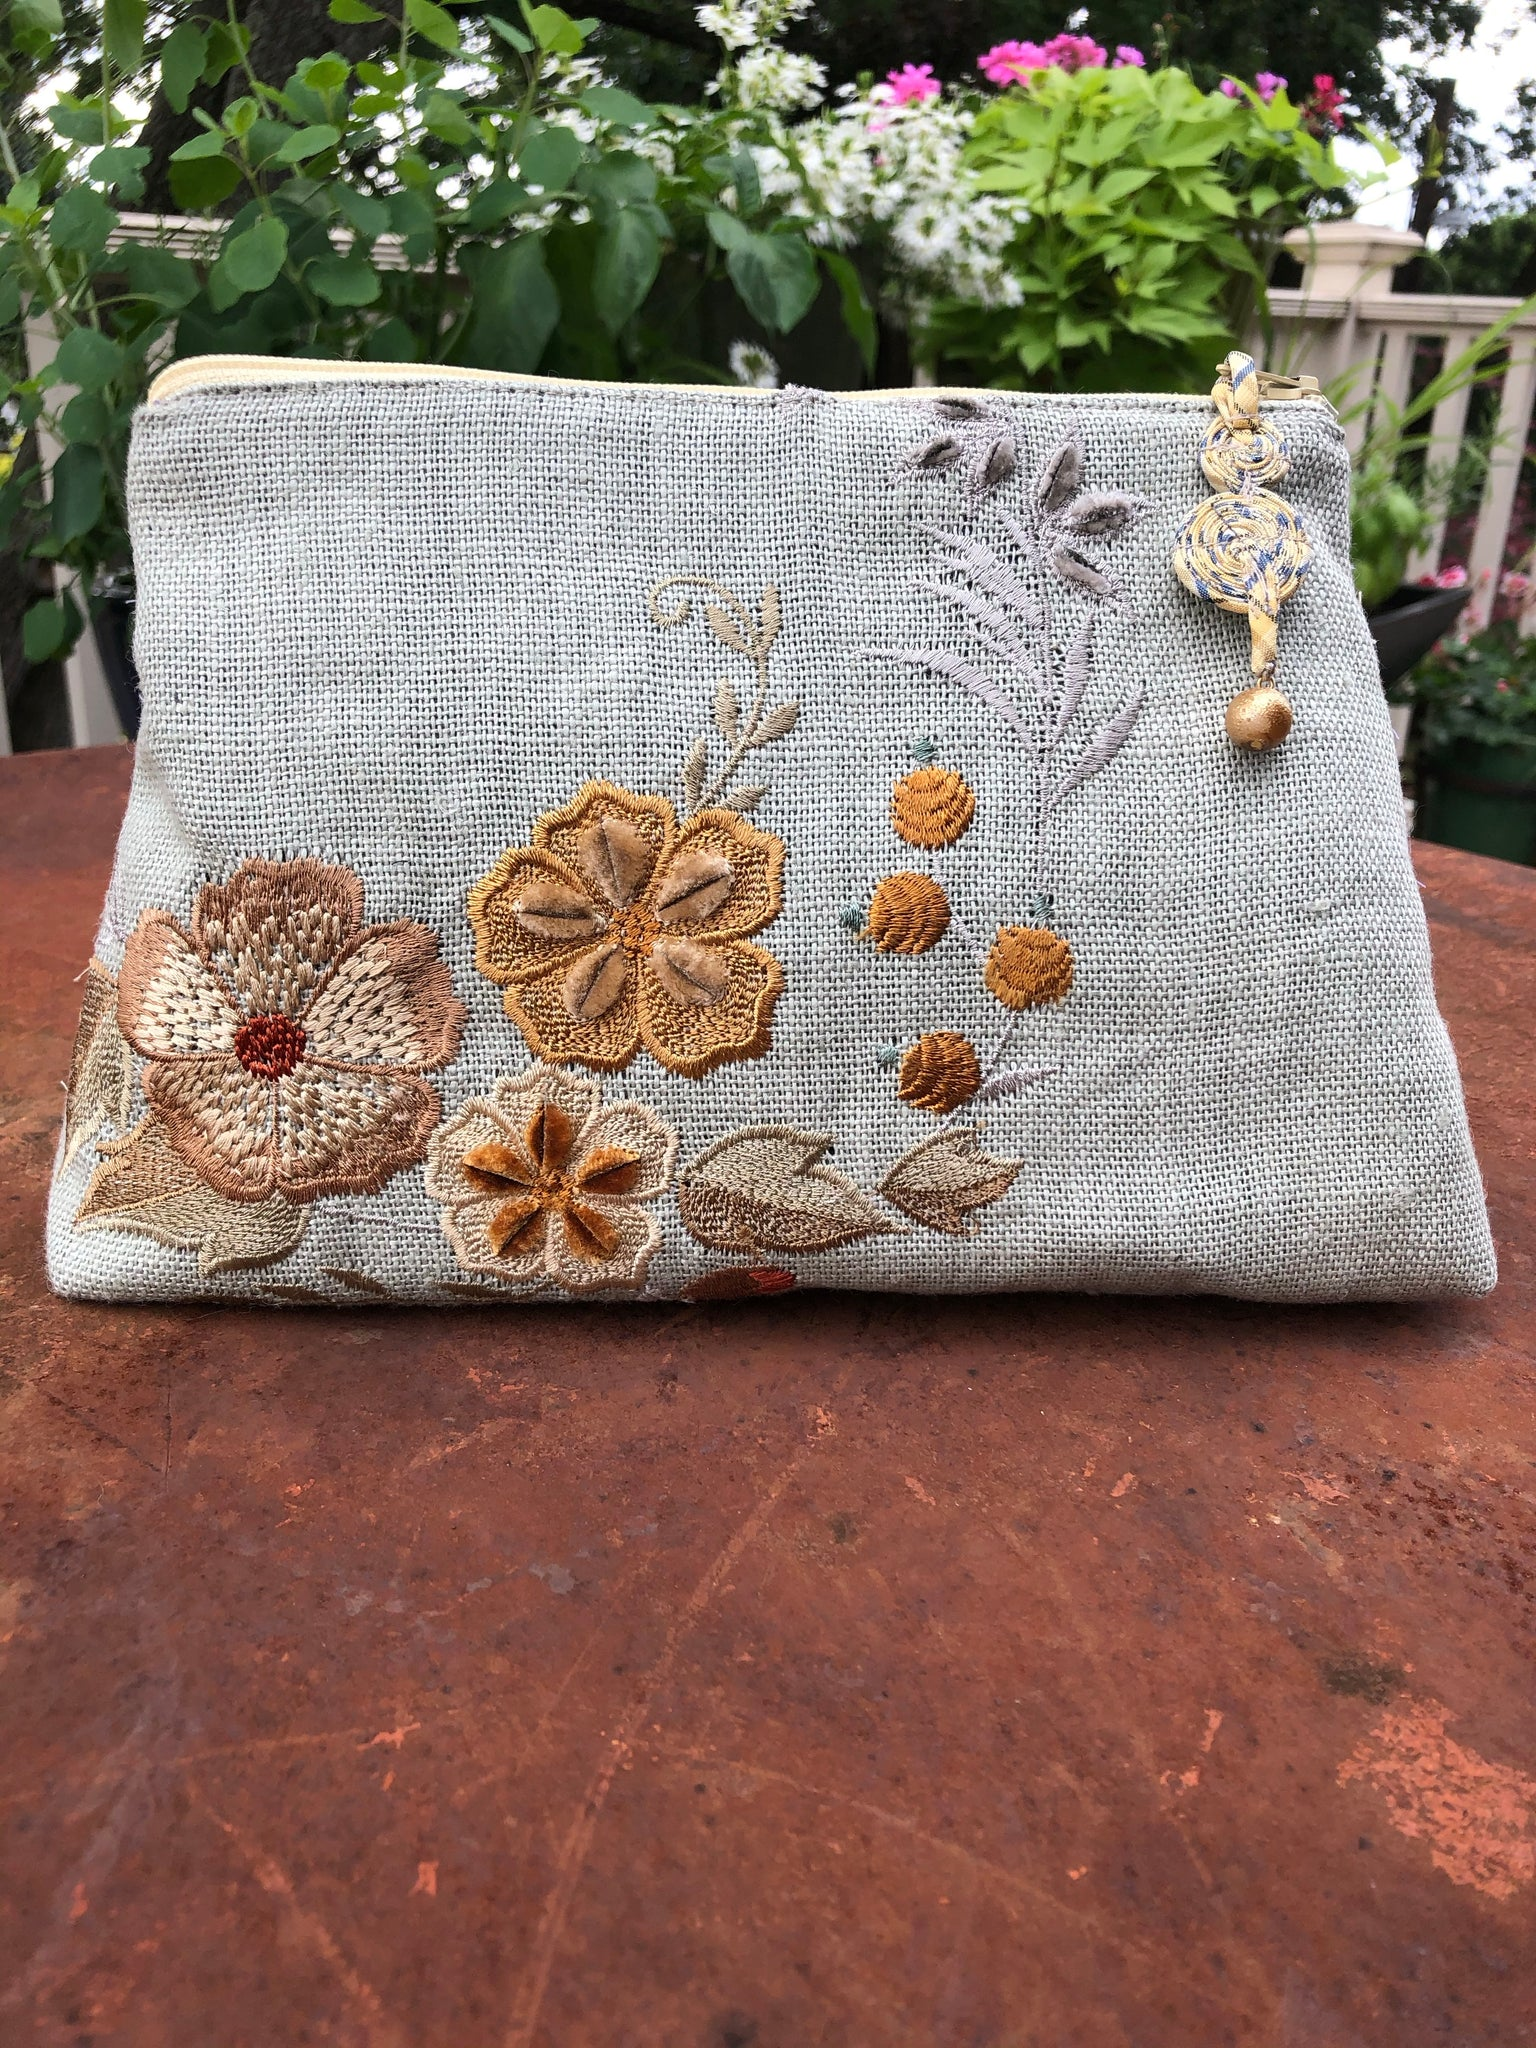 Handmade Floral Embroidered Clutch